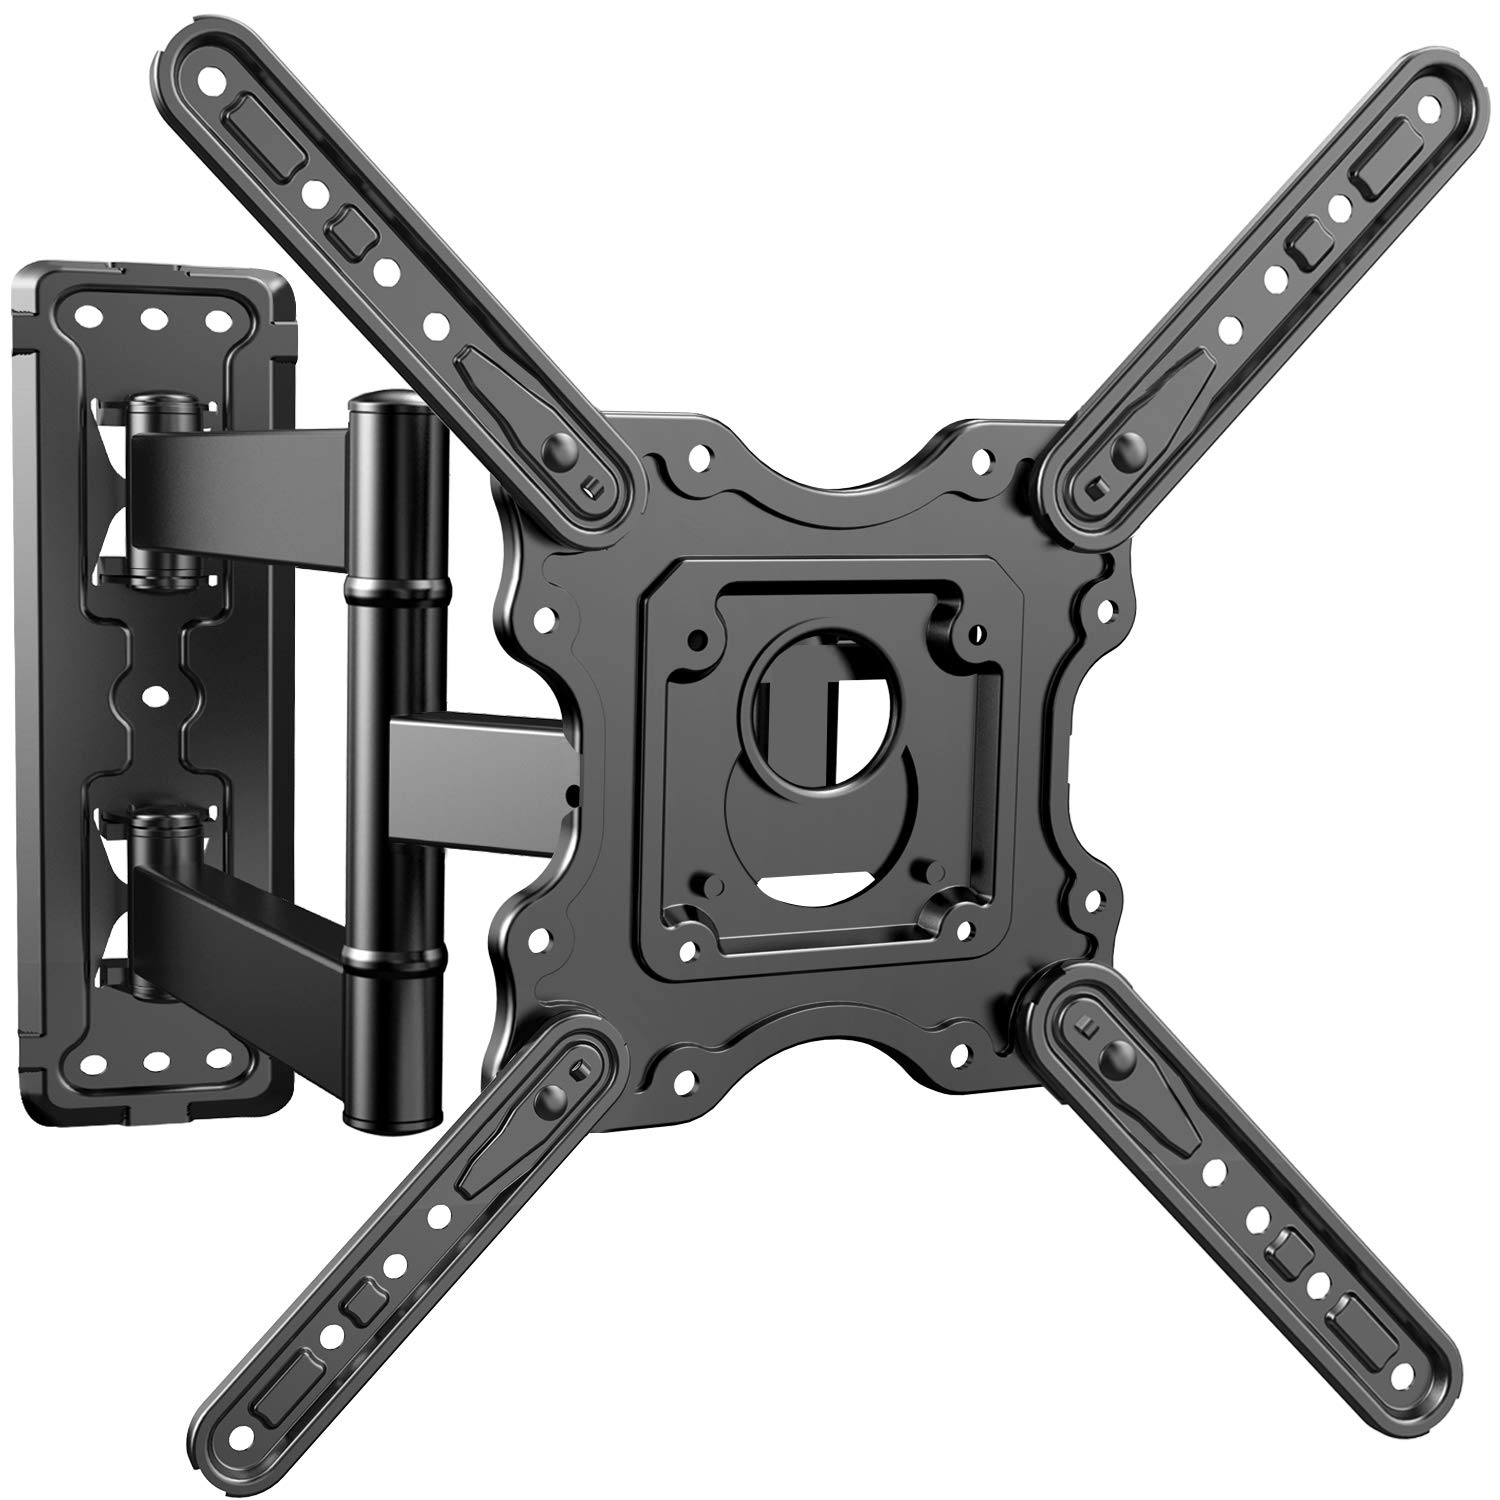 PERLESMITH Heavy Duty TV Wall Mount for Most 32-55 Inch TVs with Swivels Tilts & Extends - Full Motion TV Mount with Robust Design - Fits LED, LCD, OLED 4K TVs Up to 88 lbs Max VESA 400x400